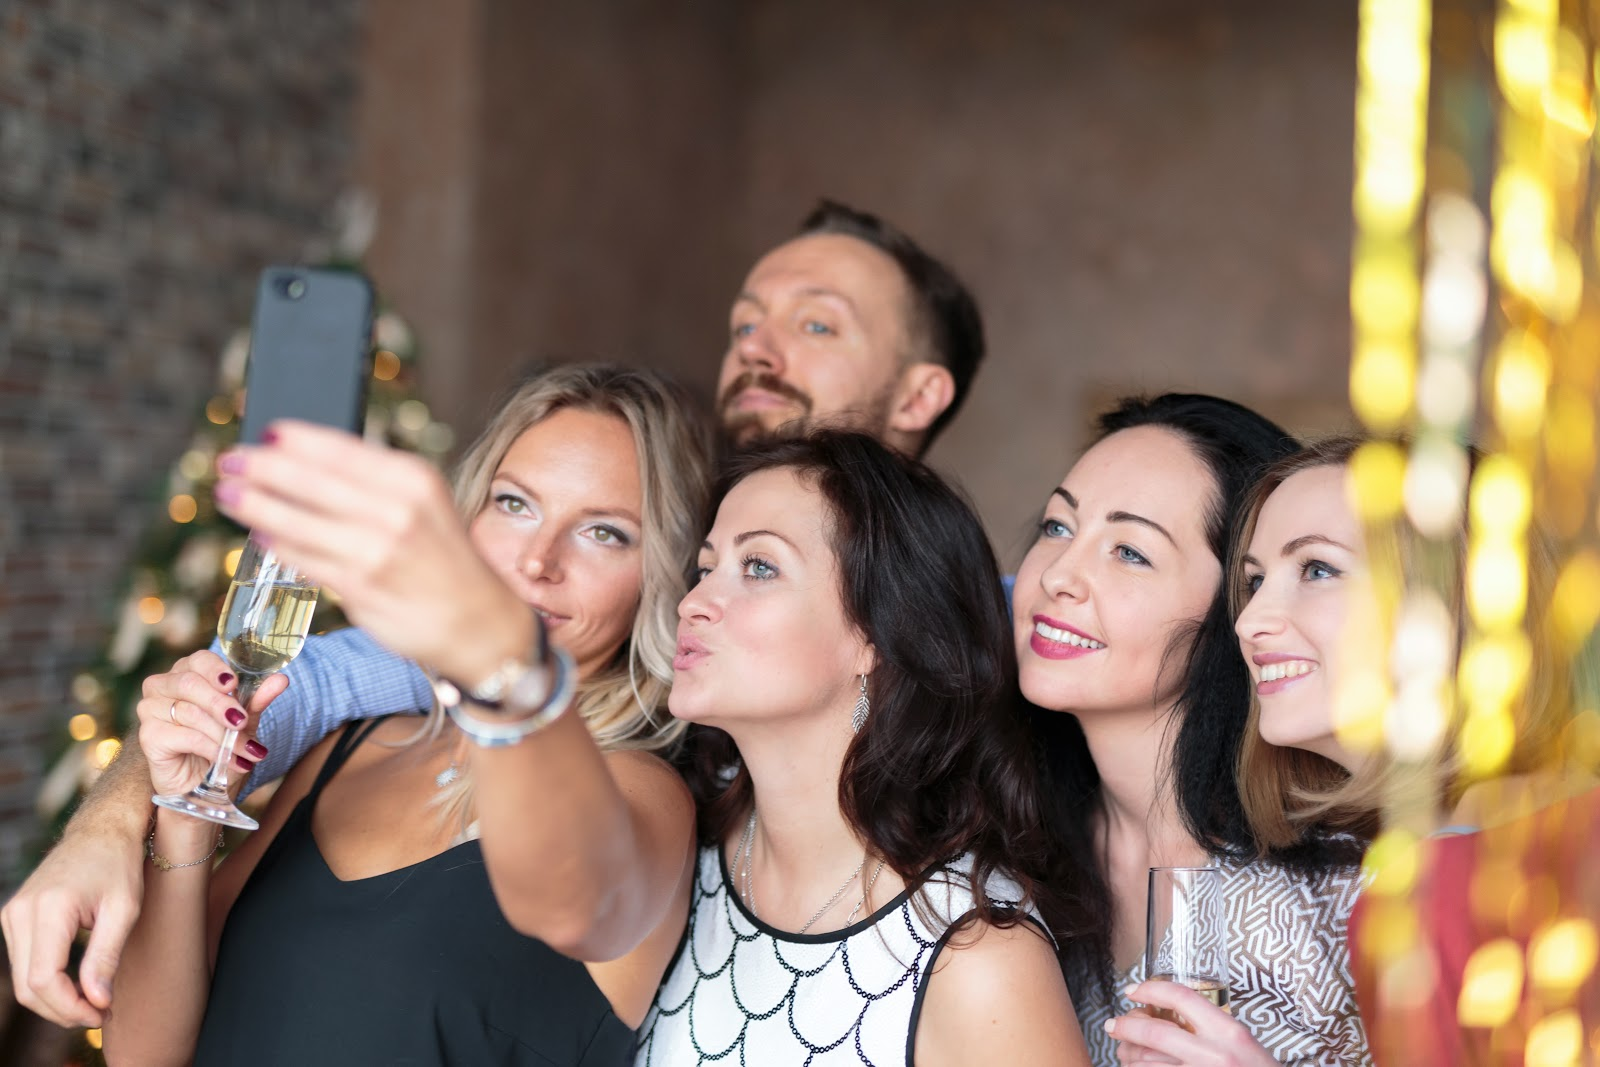 A group of people taking pictures at a party or wedding, friends